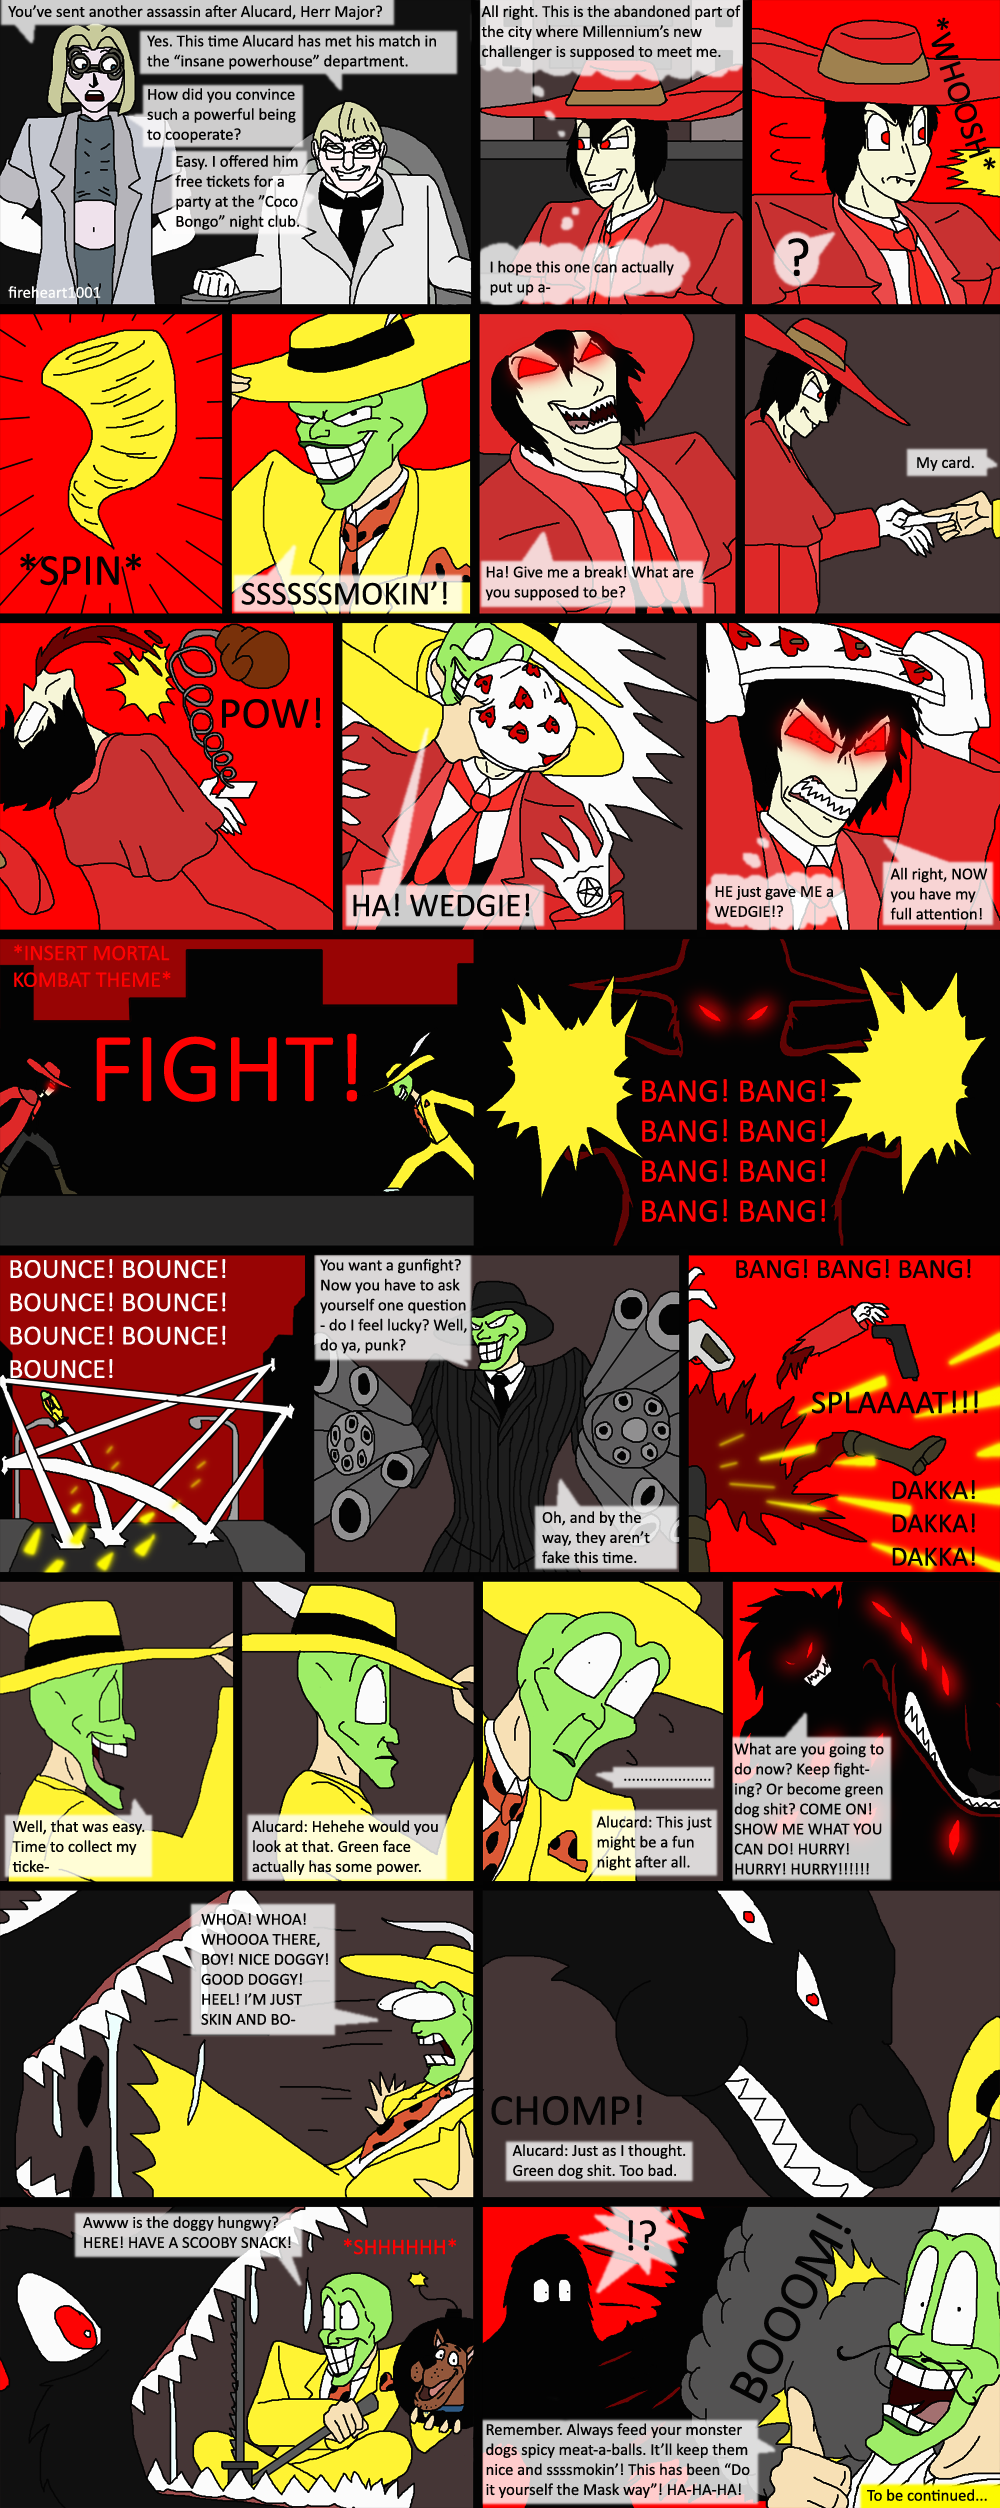 Hellsing bloopers 62-The Mask 1 by fireheart1001